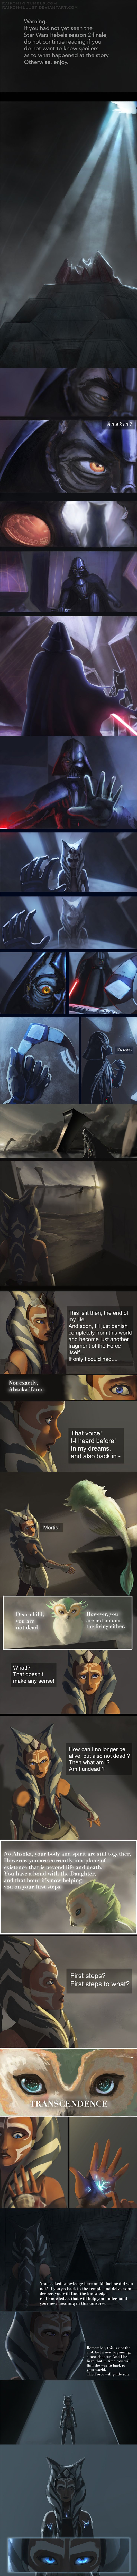 *SPOILER ALERT* [EDIT] *After watching the near end of Star Wars Rebels, this theory does in fact stand true, to a certain degree. And she is actually seen walking. As I believed. But it's not able to be understood until watching this final season of Star Wars Rebels.* This. Right here. I don't understand how every time I look up about this episode nobody else seems to have seen Ahsoka walking in the darkness.